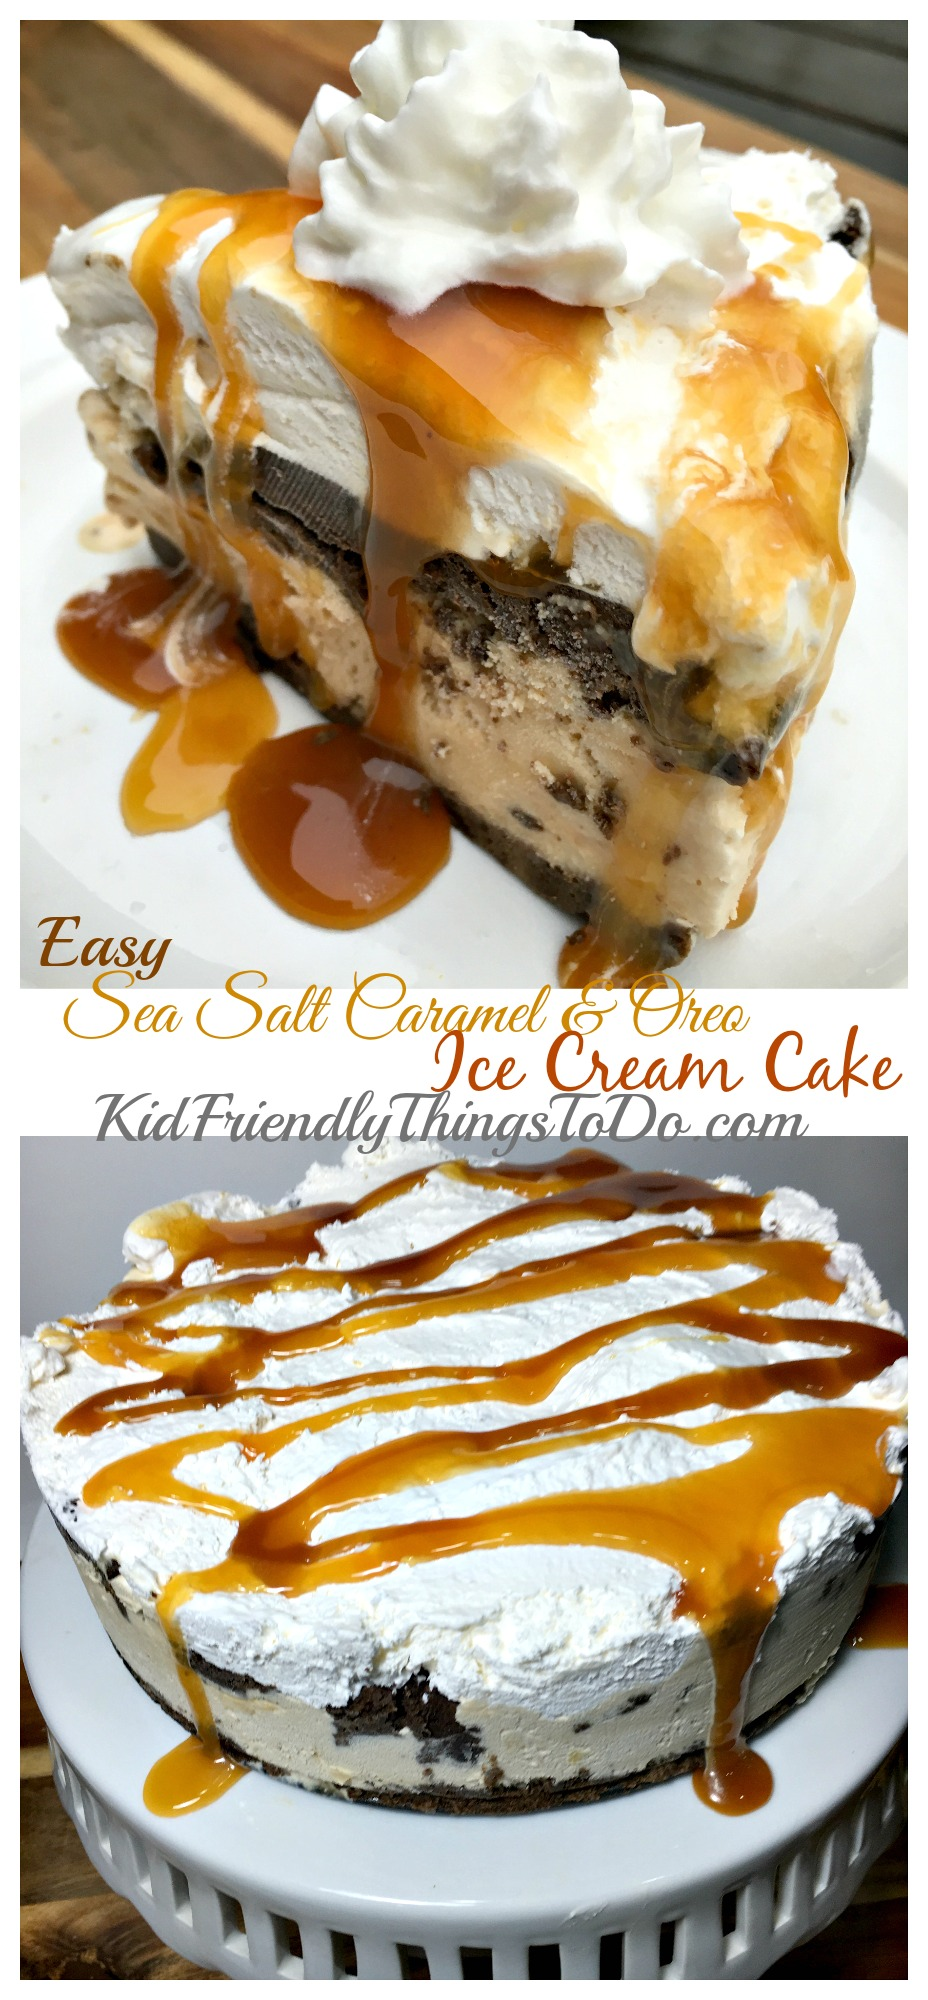 DIY Sea Salt Caramel (or your favorite flavor) & Oreo Cookie Ice Cream Cake! You won't believe how easy this is to make! - KidFriendlyThingsToDo.com